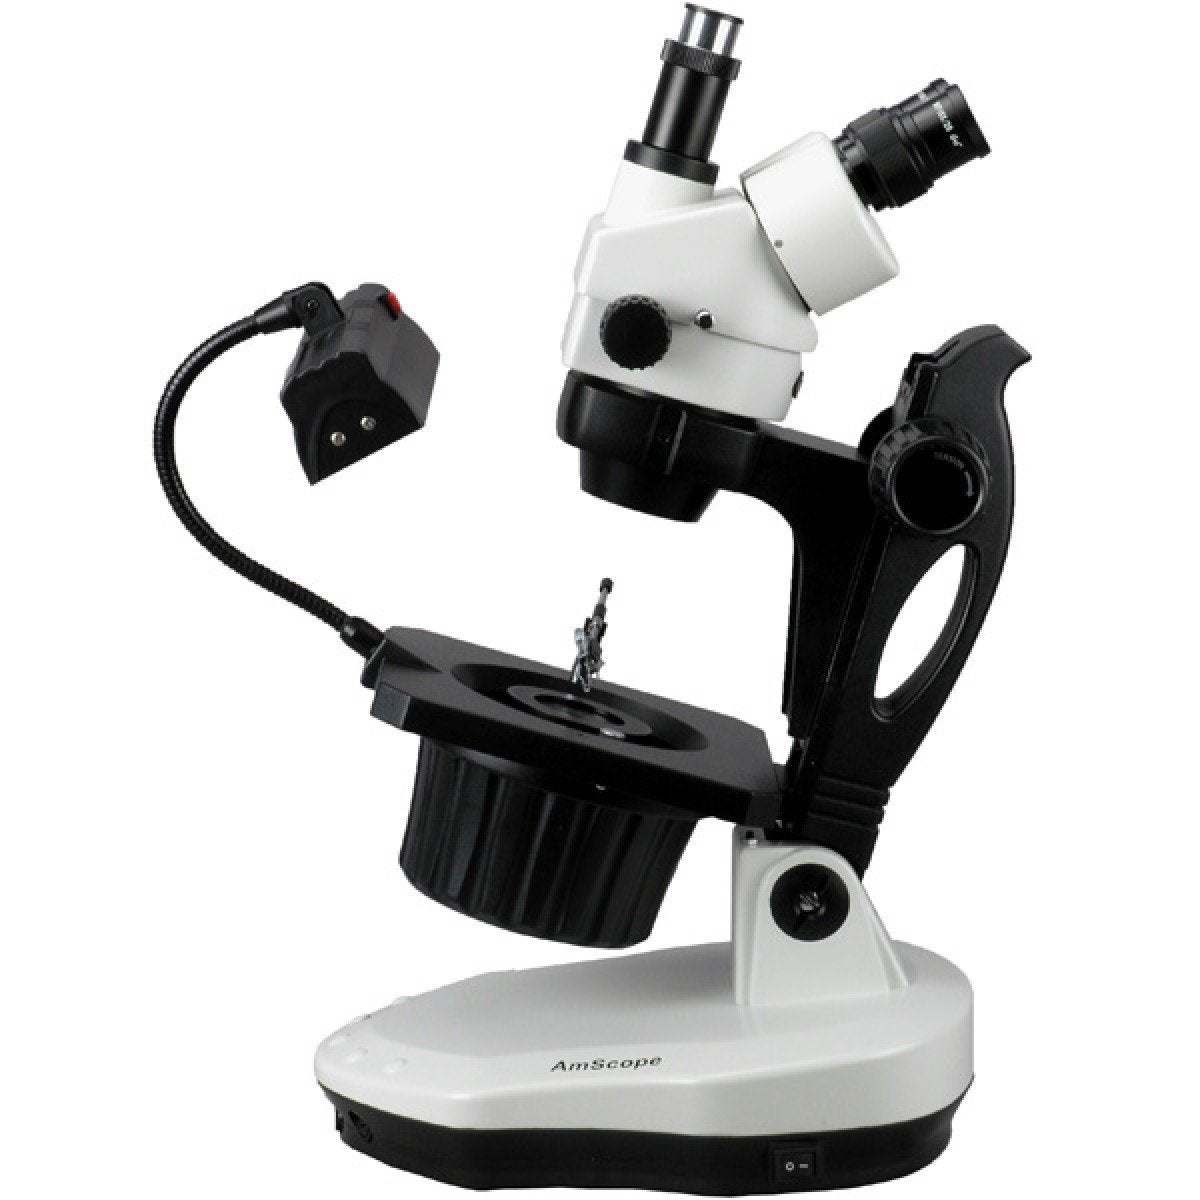 AmScope 3.5X-45X Advanced Jewel Gem Stereo Zoom Microscope